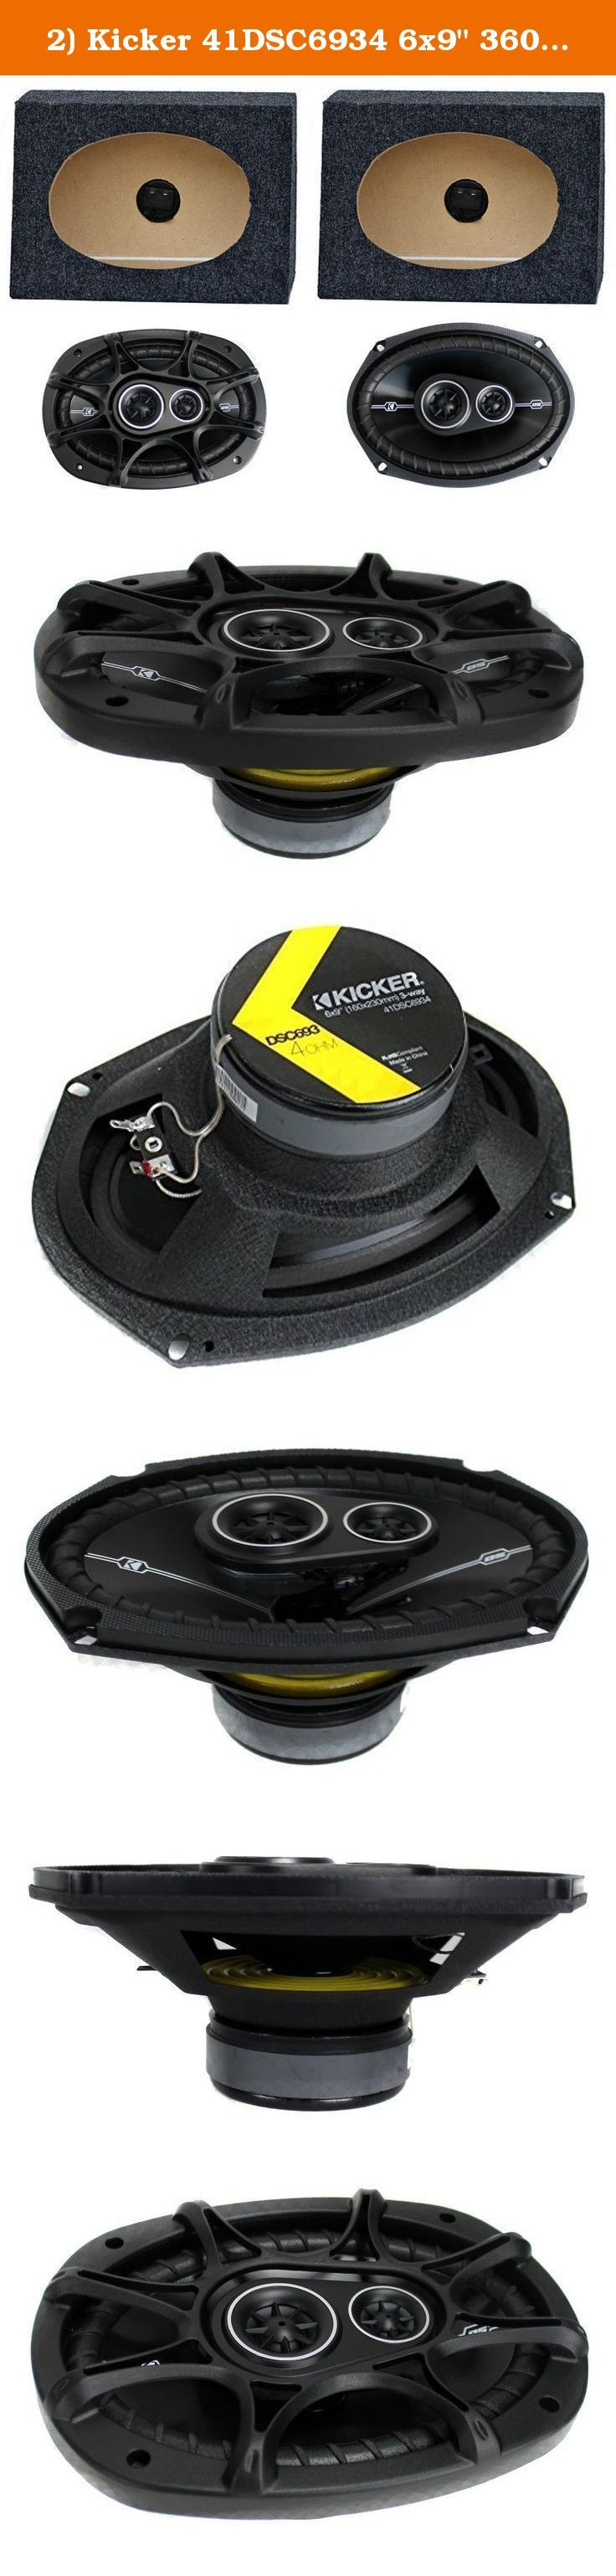 "2) Kicker 41DSC6934 6x9"" 360W Car Speakers + 2) QTW6X9 Angled 6x9"" Speaker Box. Package Includes: Kicker DSC6934 6x9"" 360W 3-Way Car Speakers (1 pair) Q-Power QTW6X9 Angled 6x9"" Speakers Box Enclosure (1 pair) ----- The Kicker DSC6934 6x9"" 3-way car audio speakers features a MAX power of 360 watts and an RMS power of 90 watts. A drop-in coaxial upgrade with the flexibility to fit nearly any vehicles doors for a vast improvement over factory sound. Also, the thin-profile woofers avoid..."